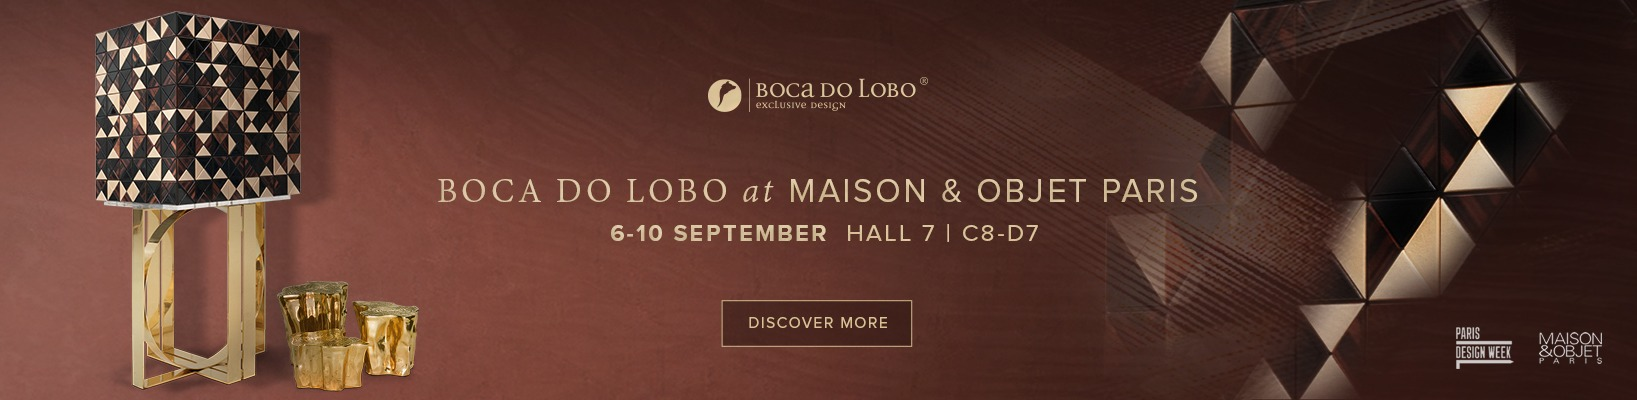 Boca do Lobo at Maison & Objet Paris September 2019 what to do in paris What To Do In Paris – Exclusive Design Guide For The City Of Lights Banner 20Maison